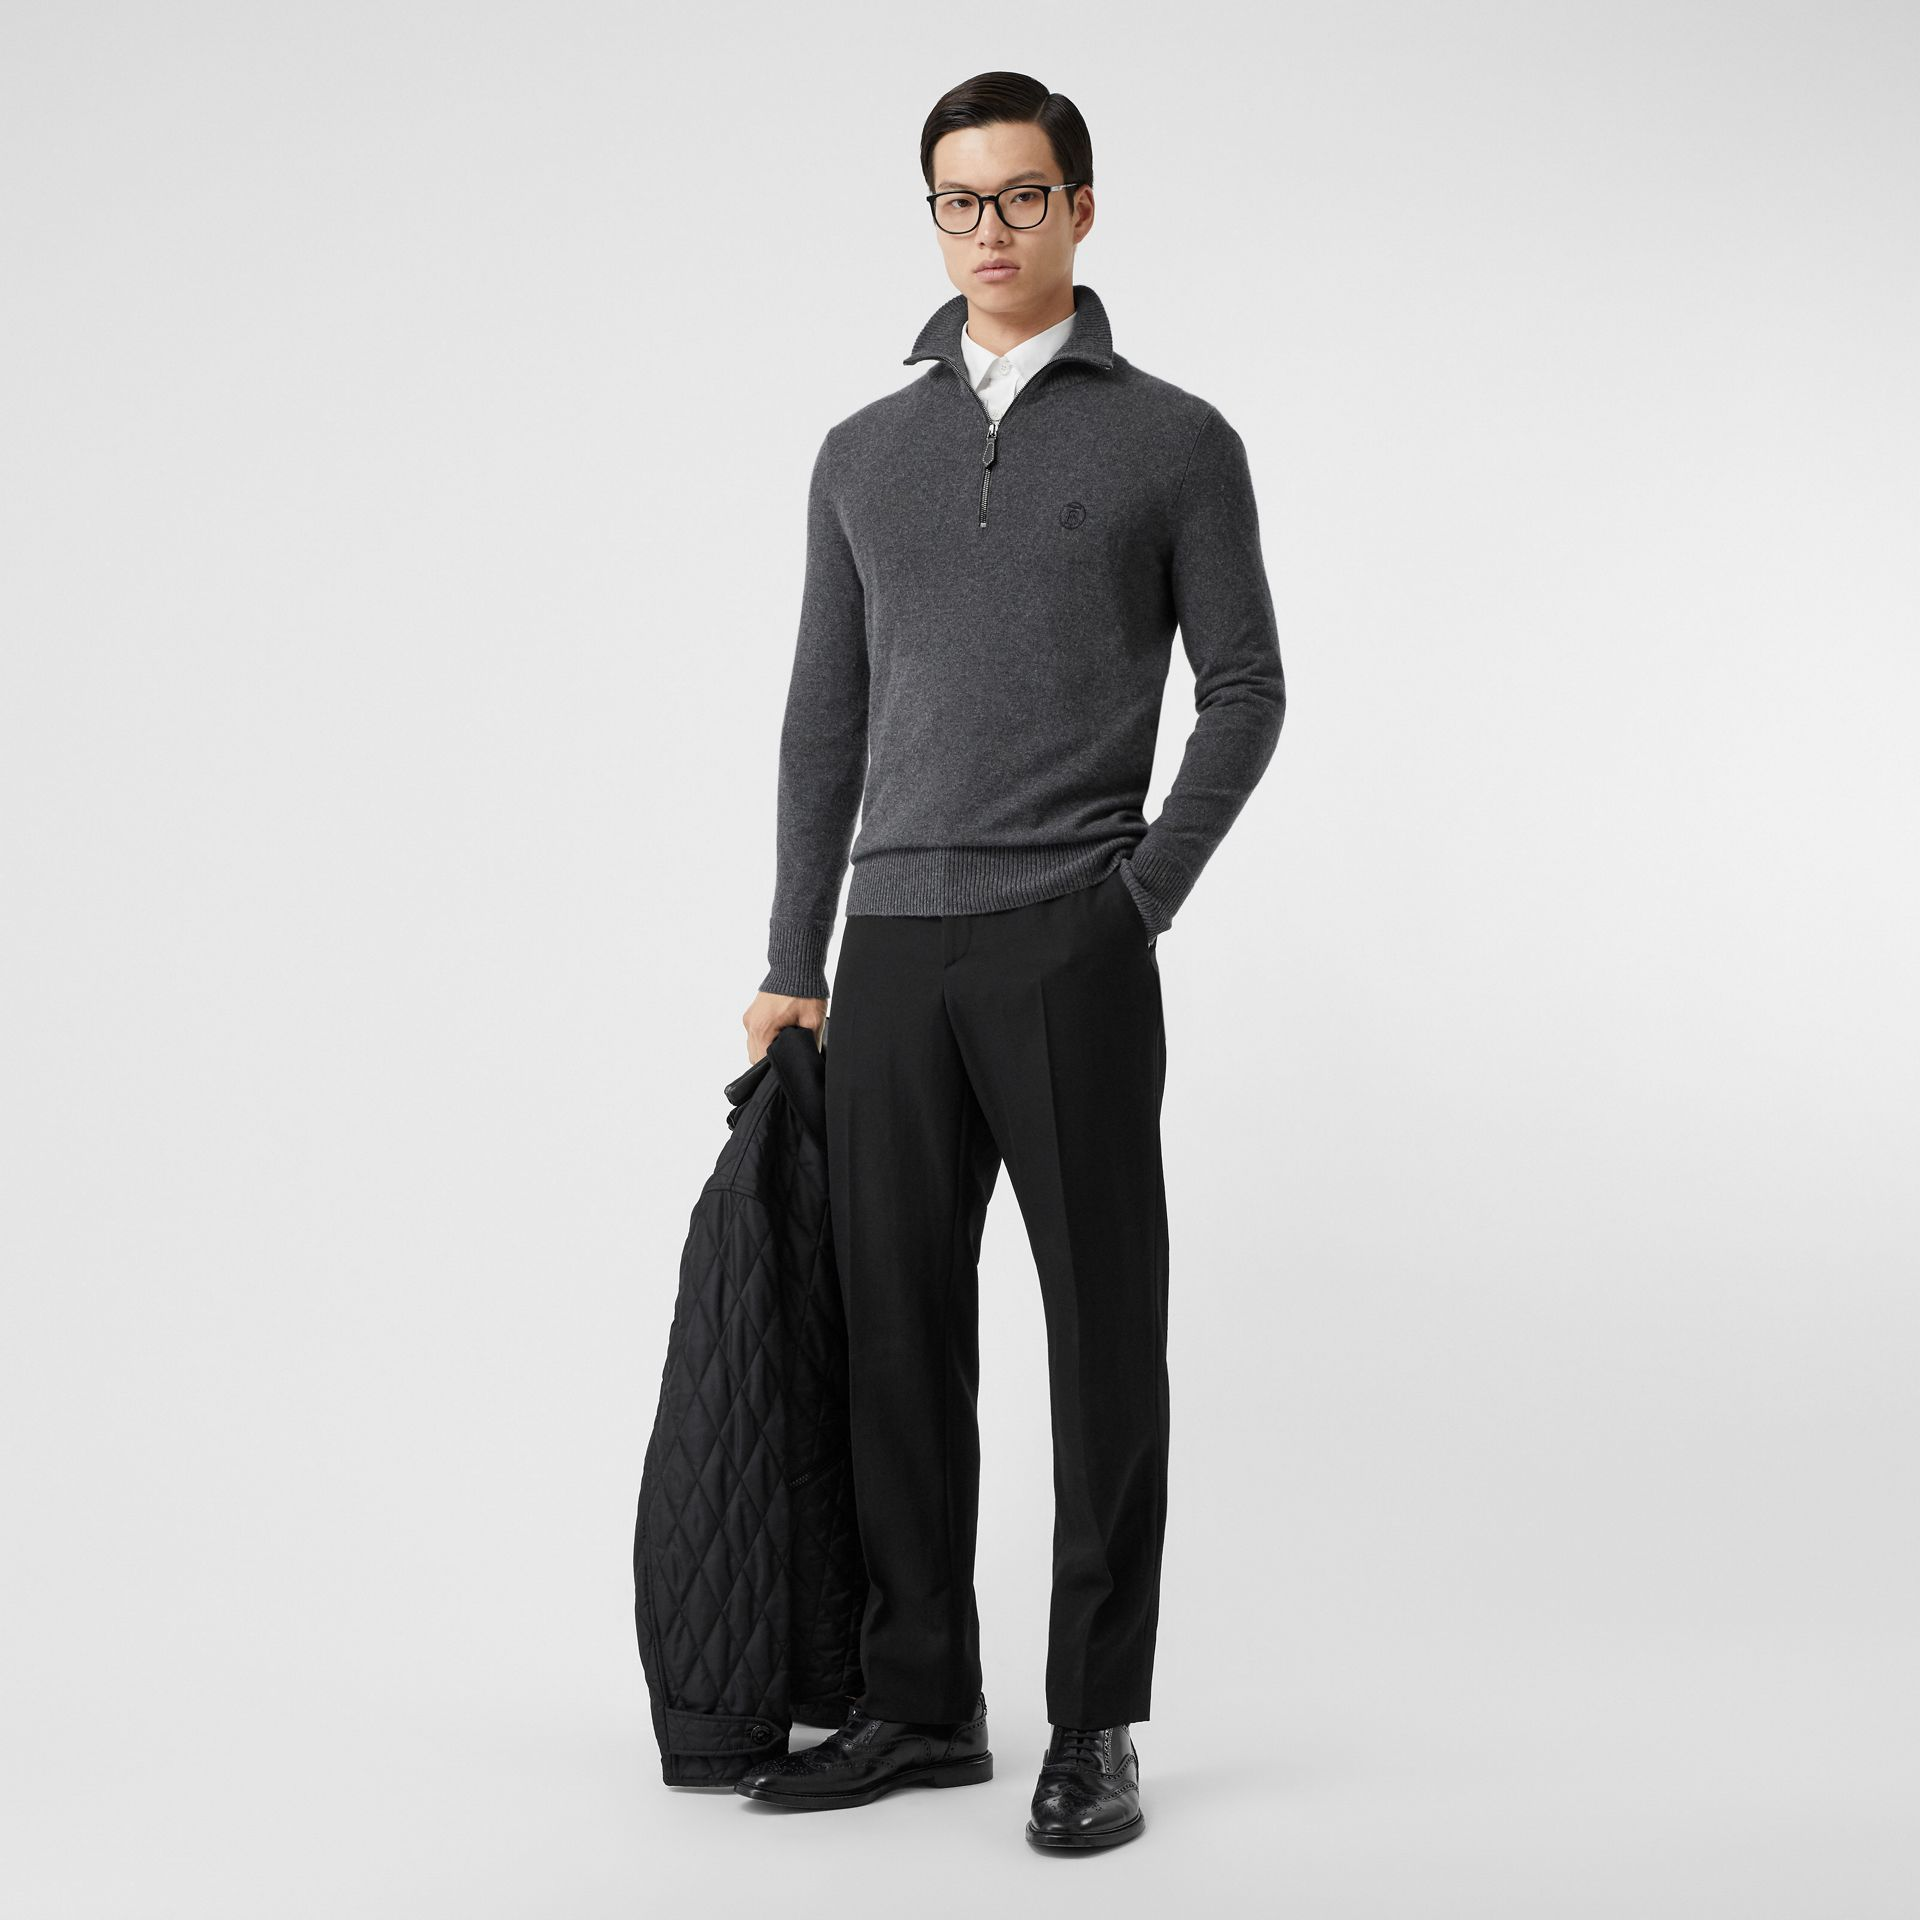 Monogram Motif Cashmere Funnel Neck Sweater in Steel Grey - Men | Burberry - gallery image 5